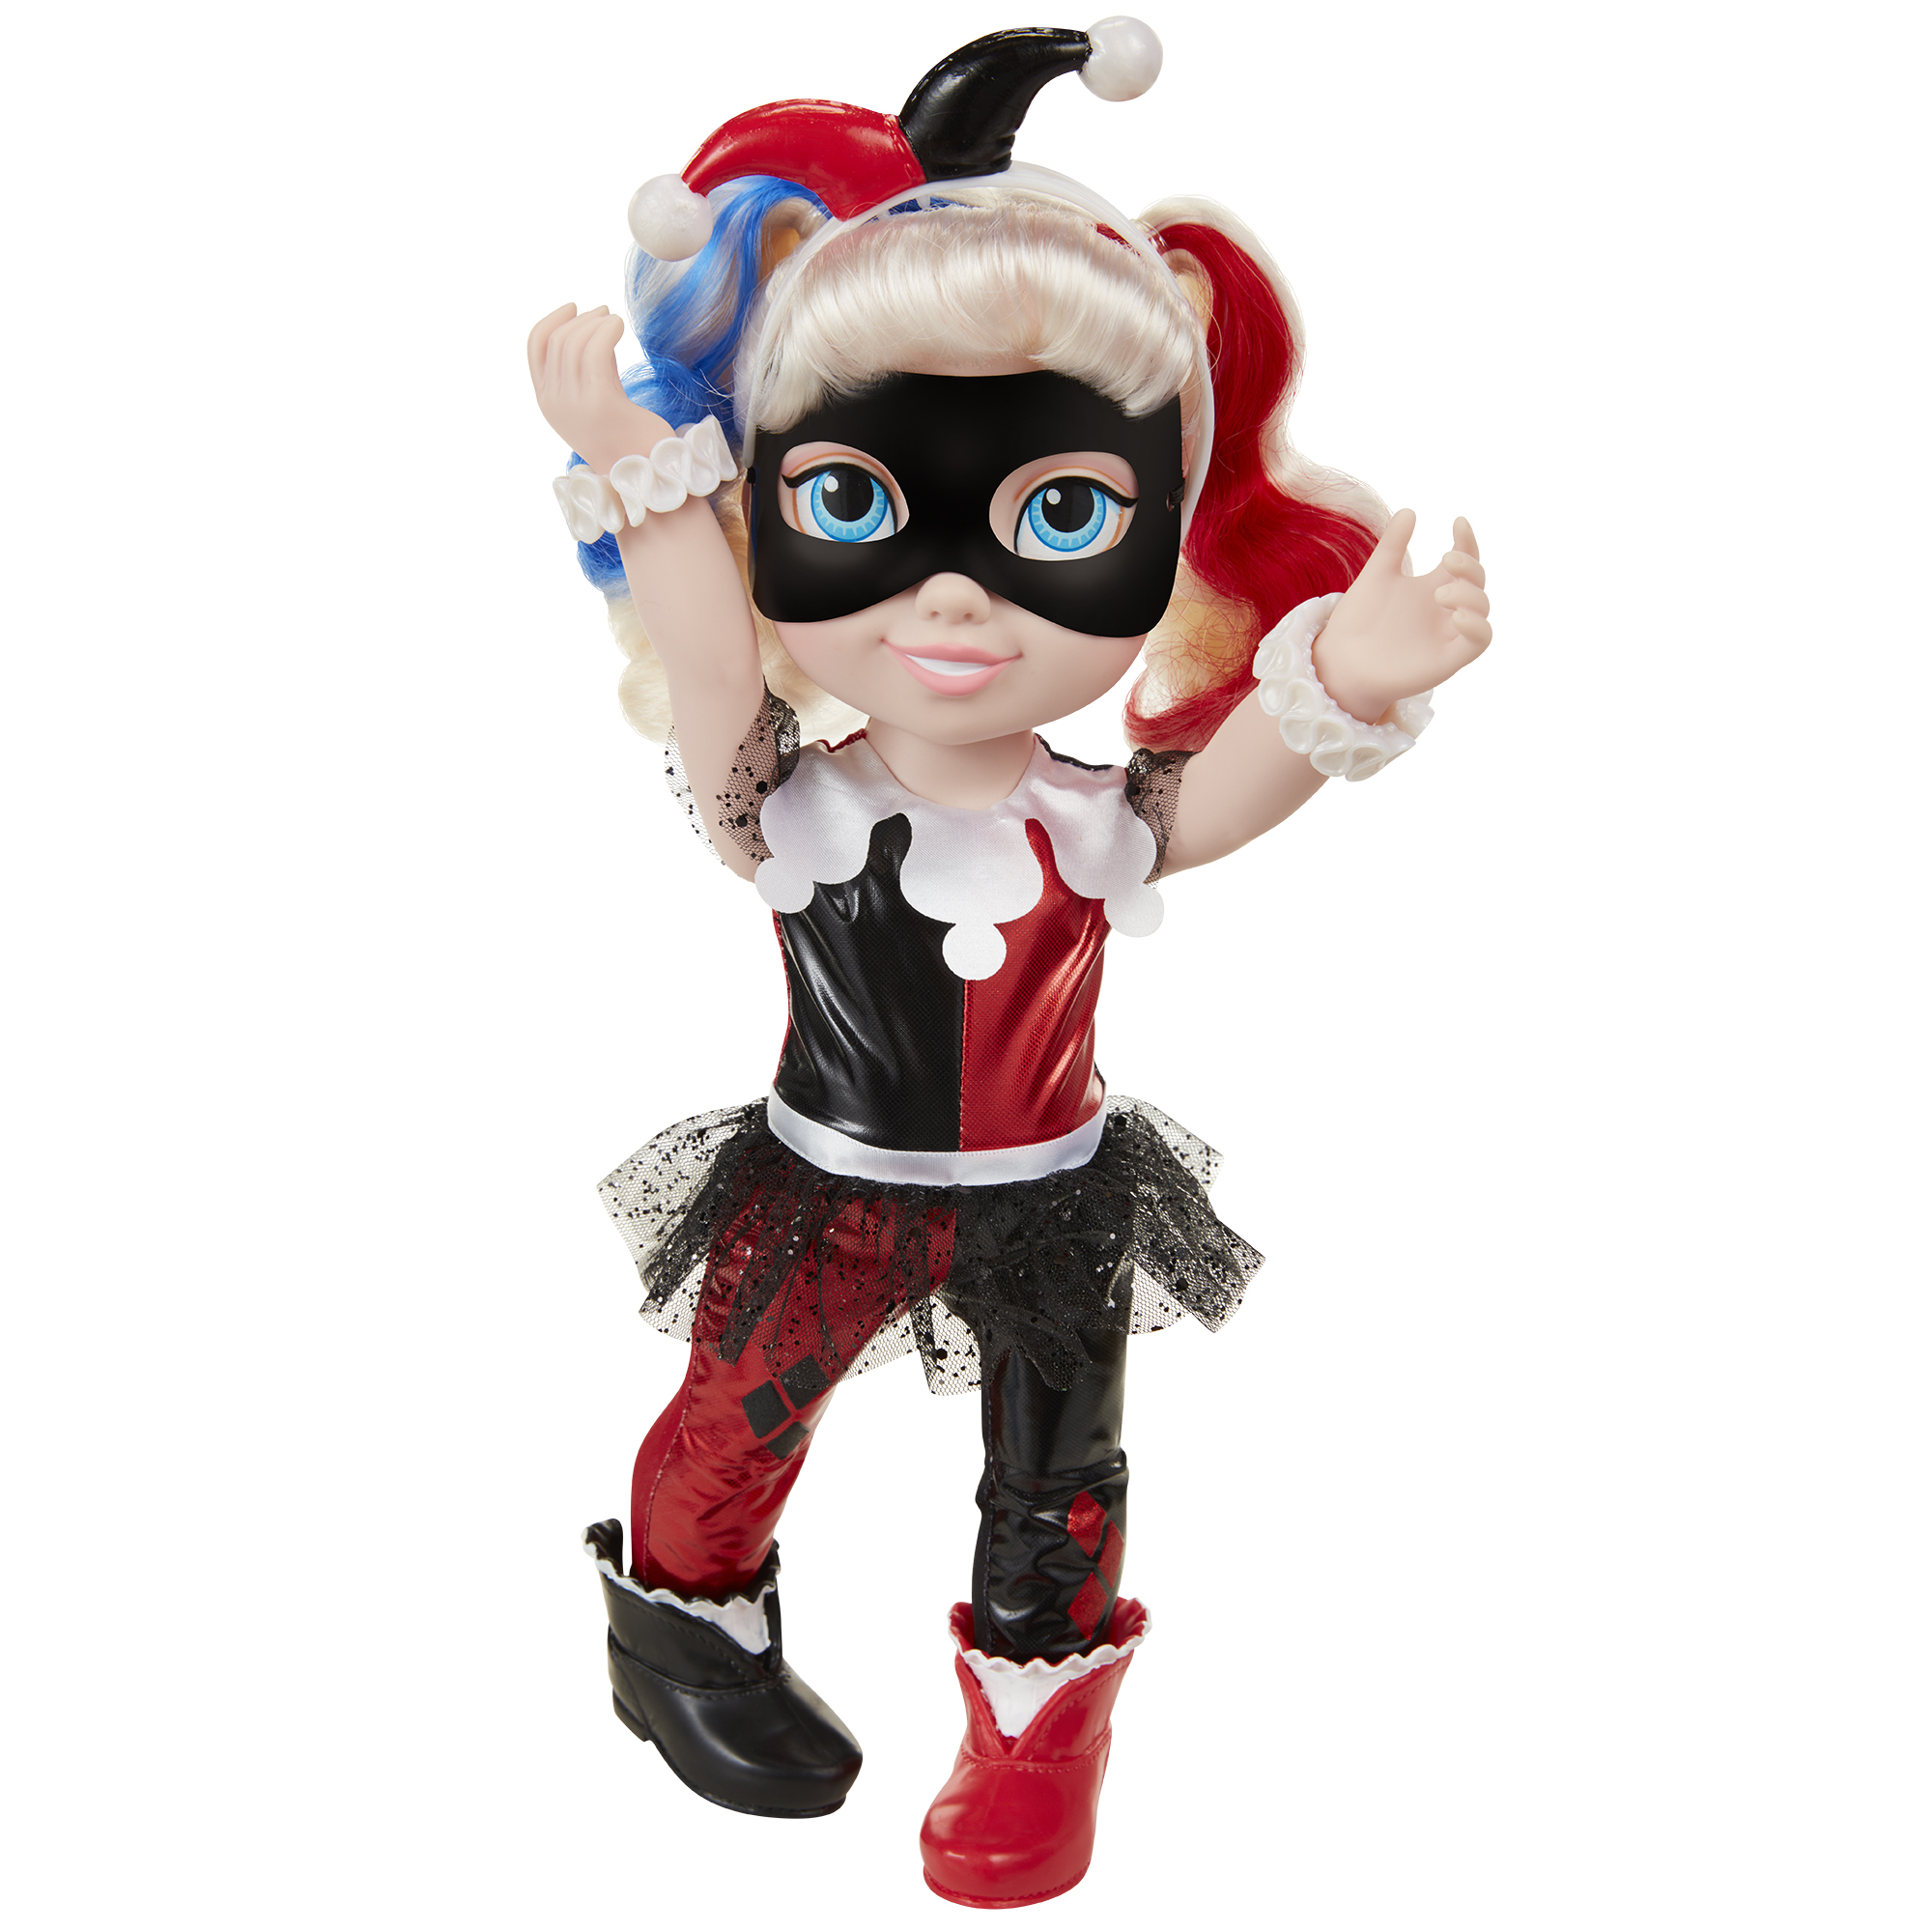 "DC SuperHero Girls Harley Quinn 15"" Toddler Doll - Walmart Exclusive"